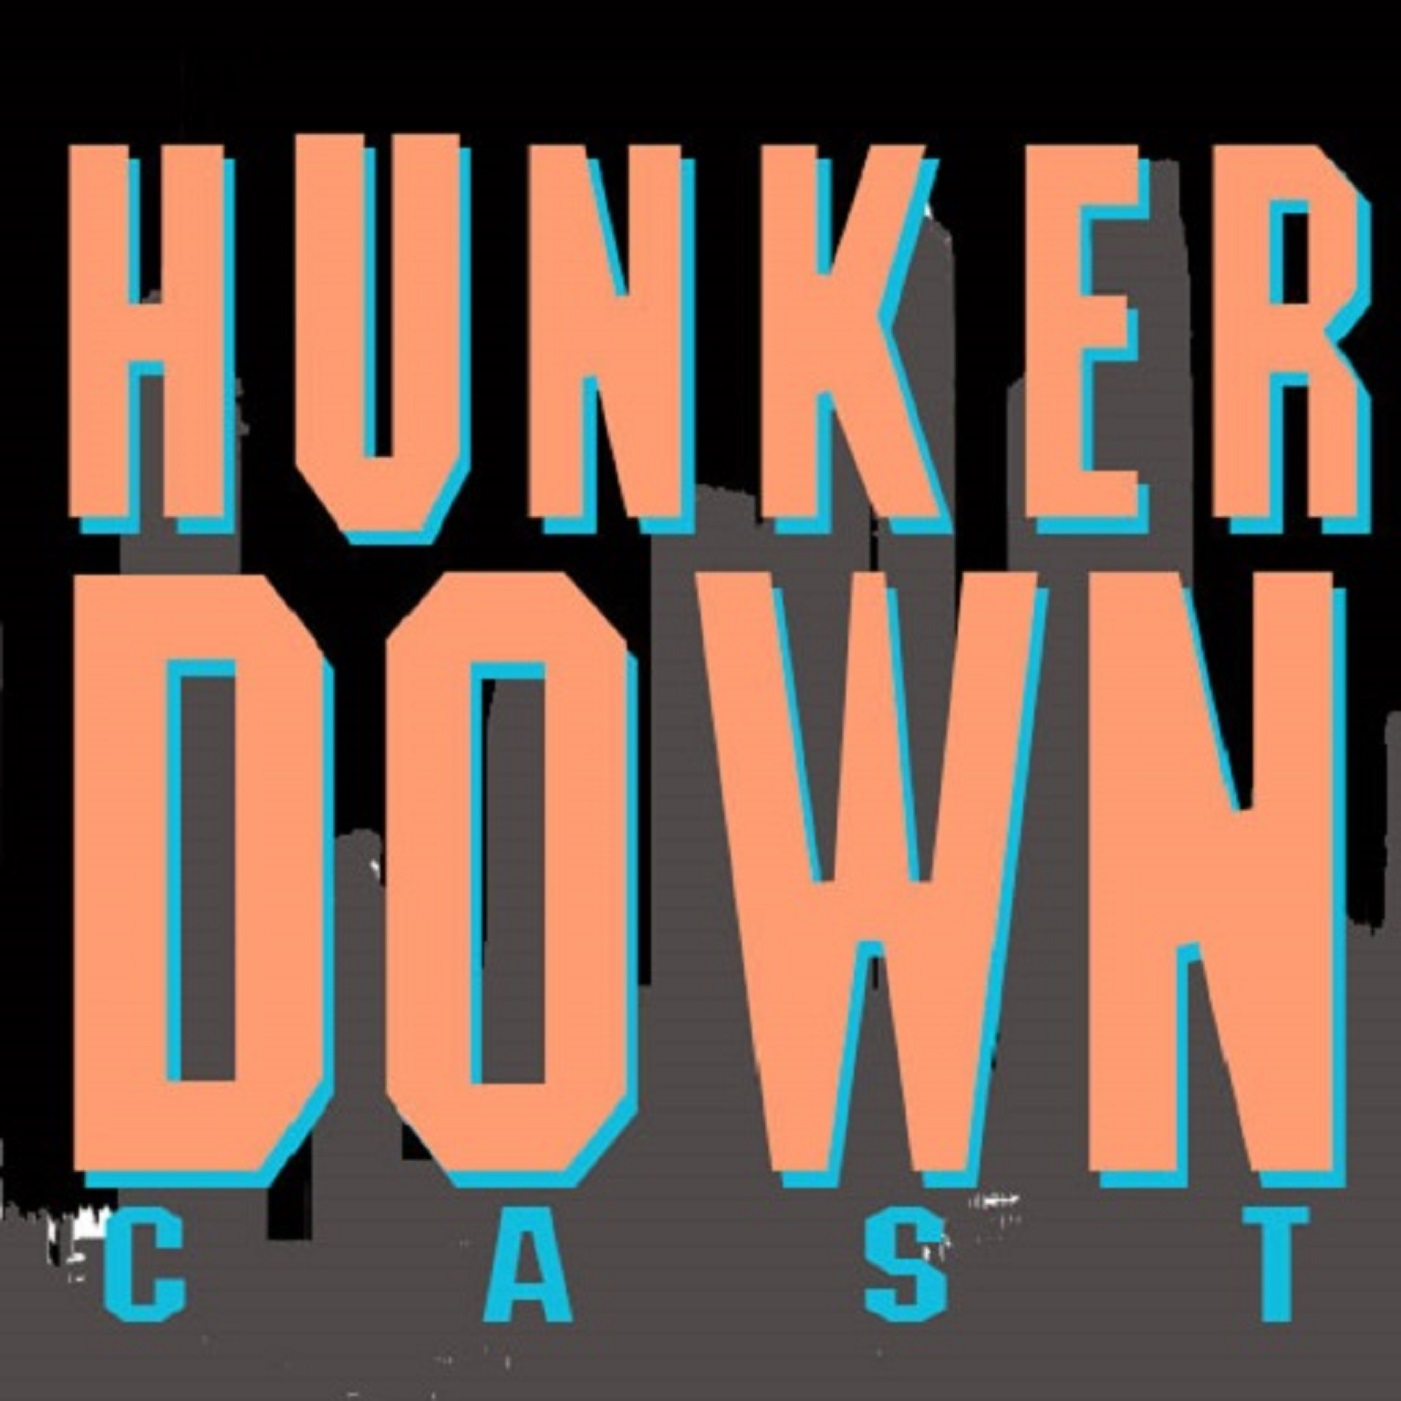 The Hunker Downcast logo